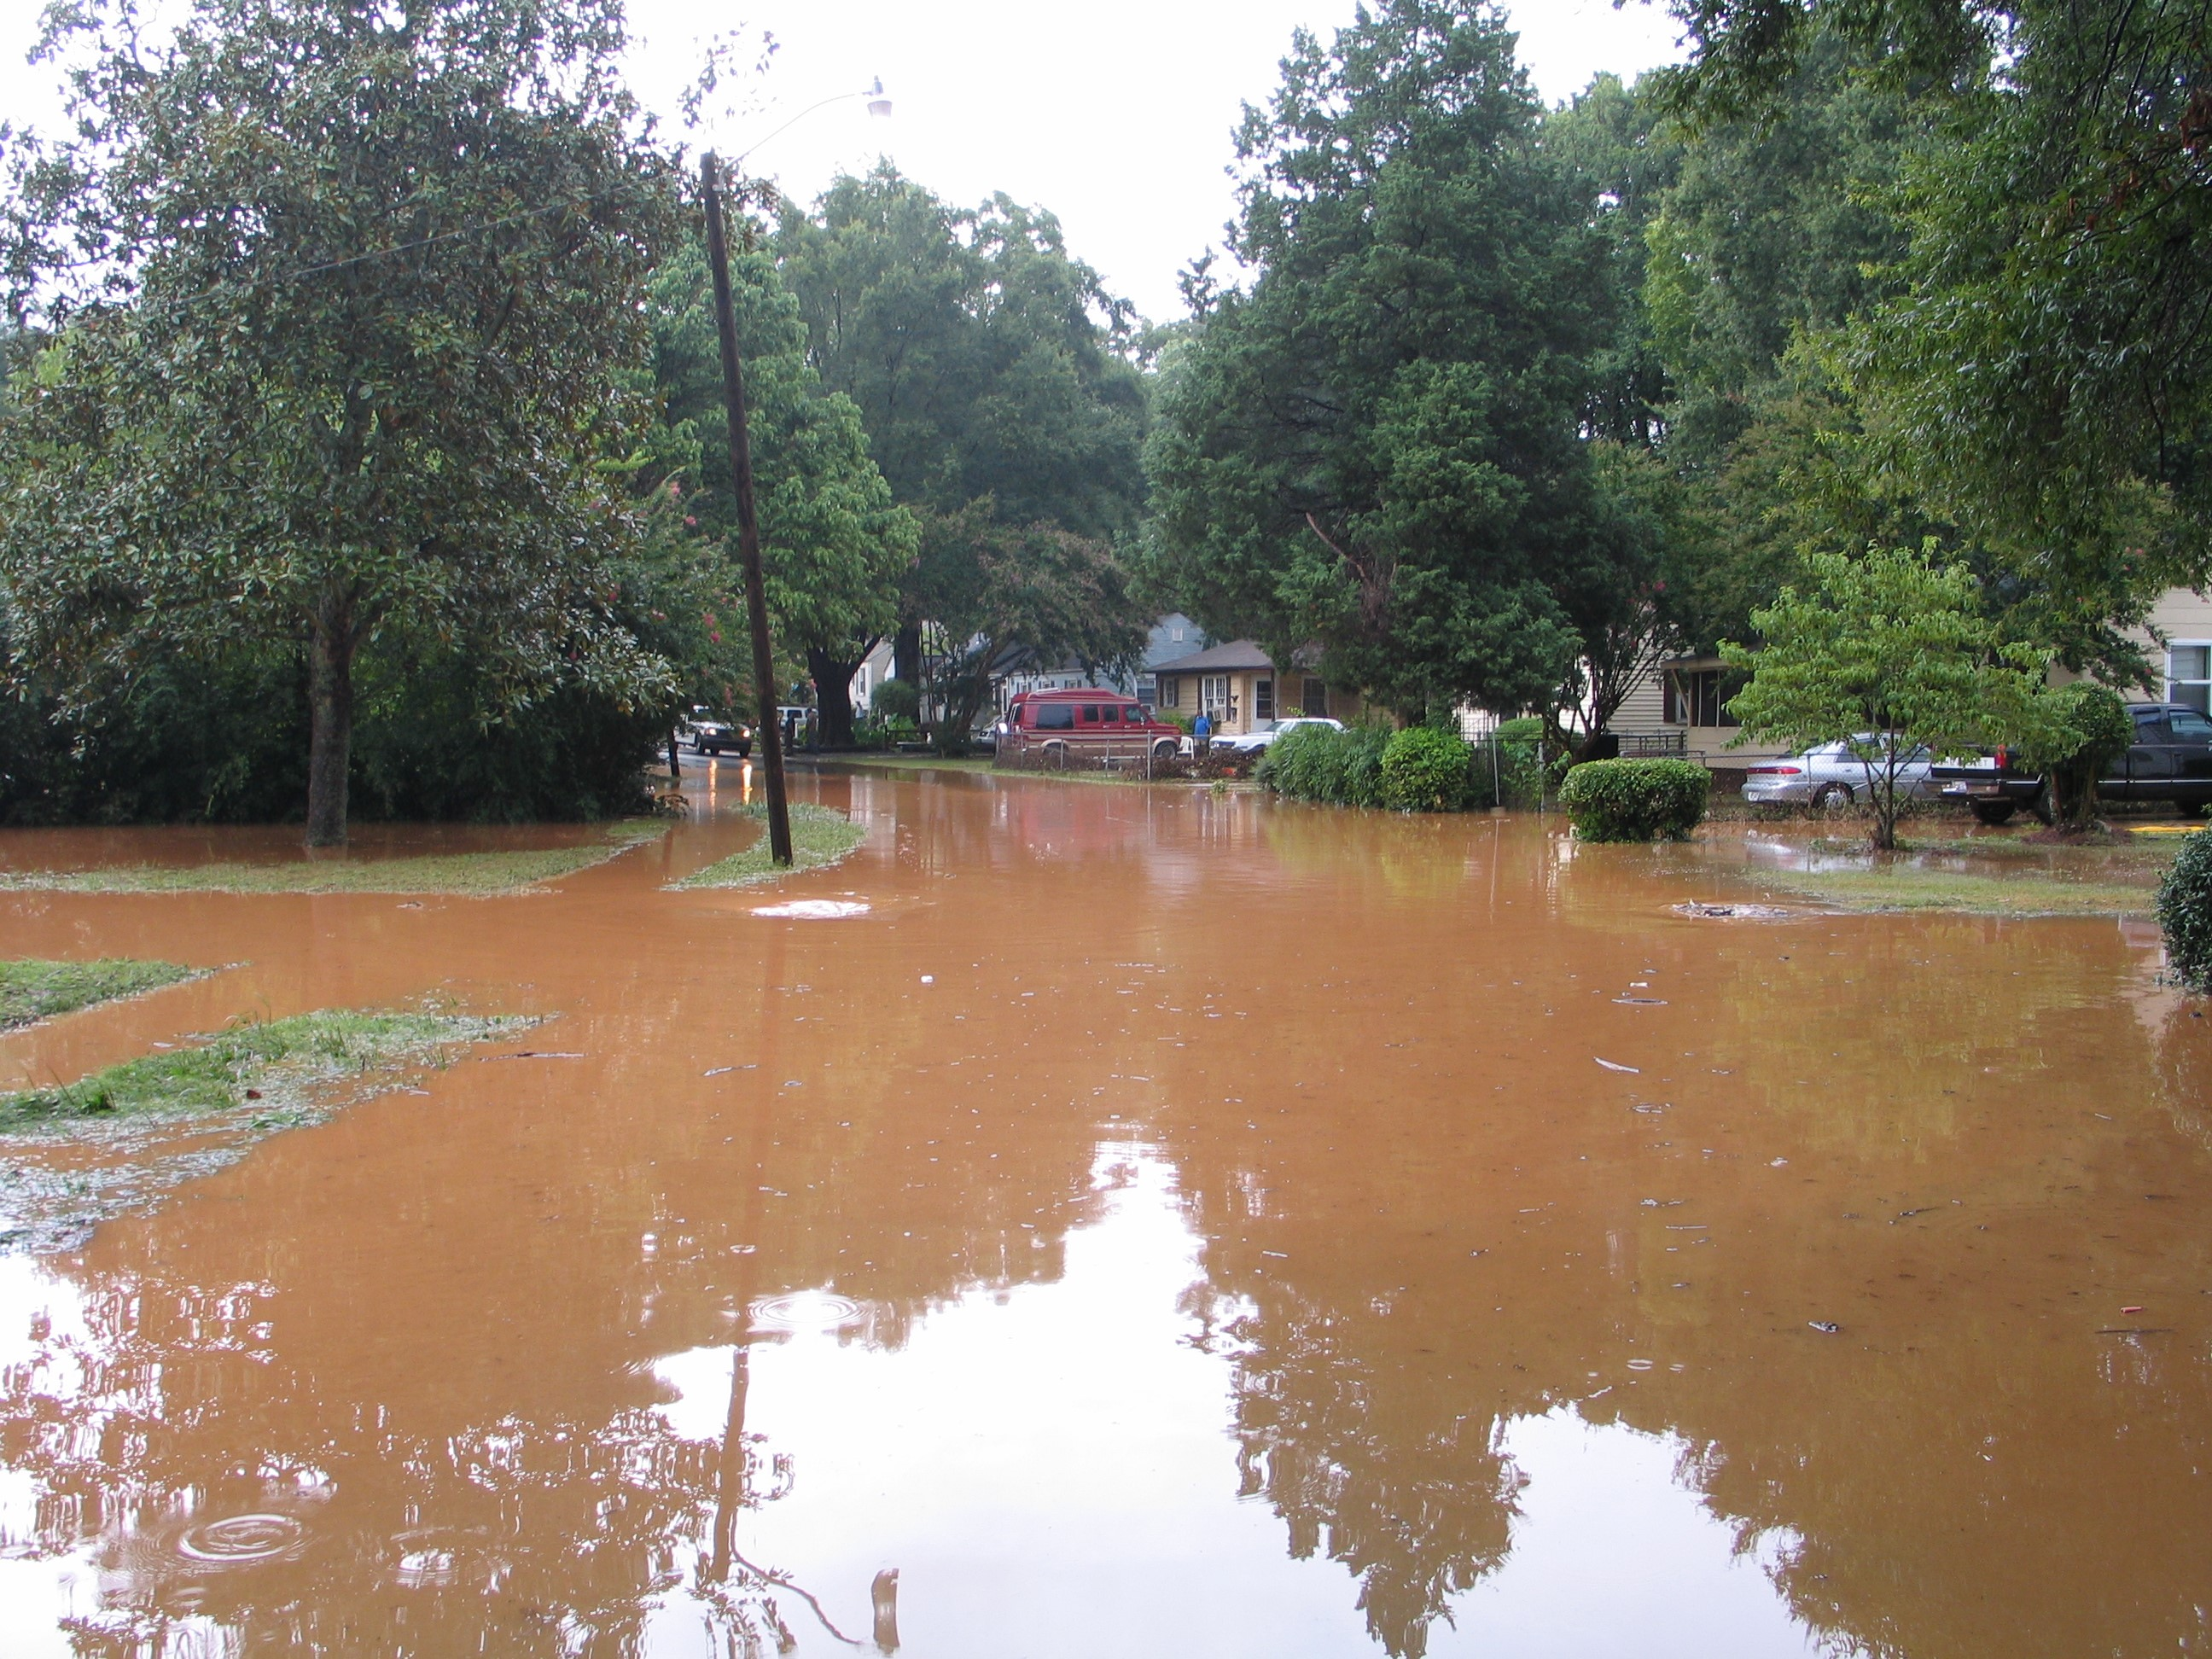 Flooding in a Charlotte Neighborhood